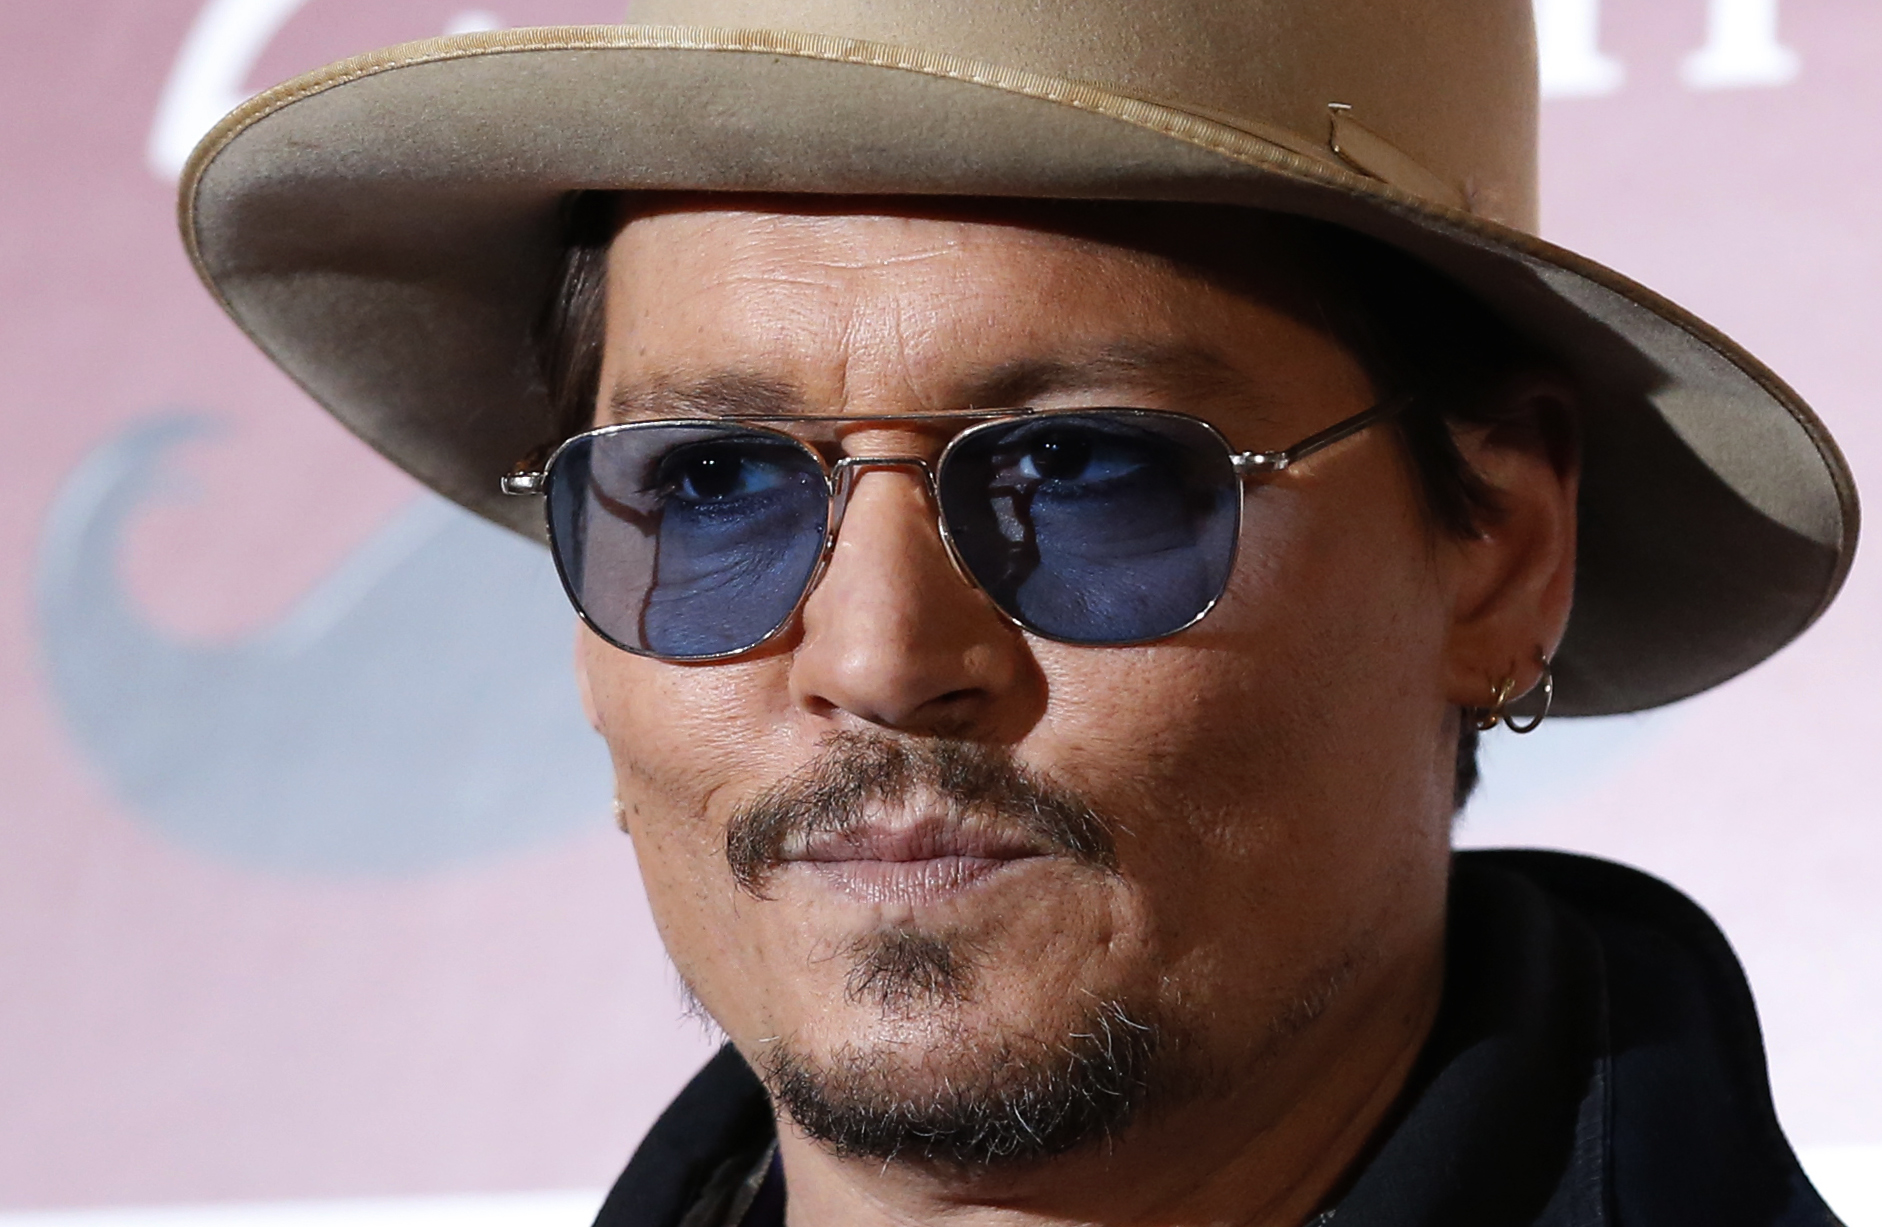 Actor Johnny Depp poses during a photo session ahead of a news conference for his movie Mortdecai in Tokyo on Jan. 28, 2015